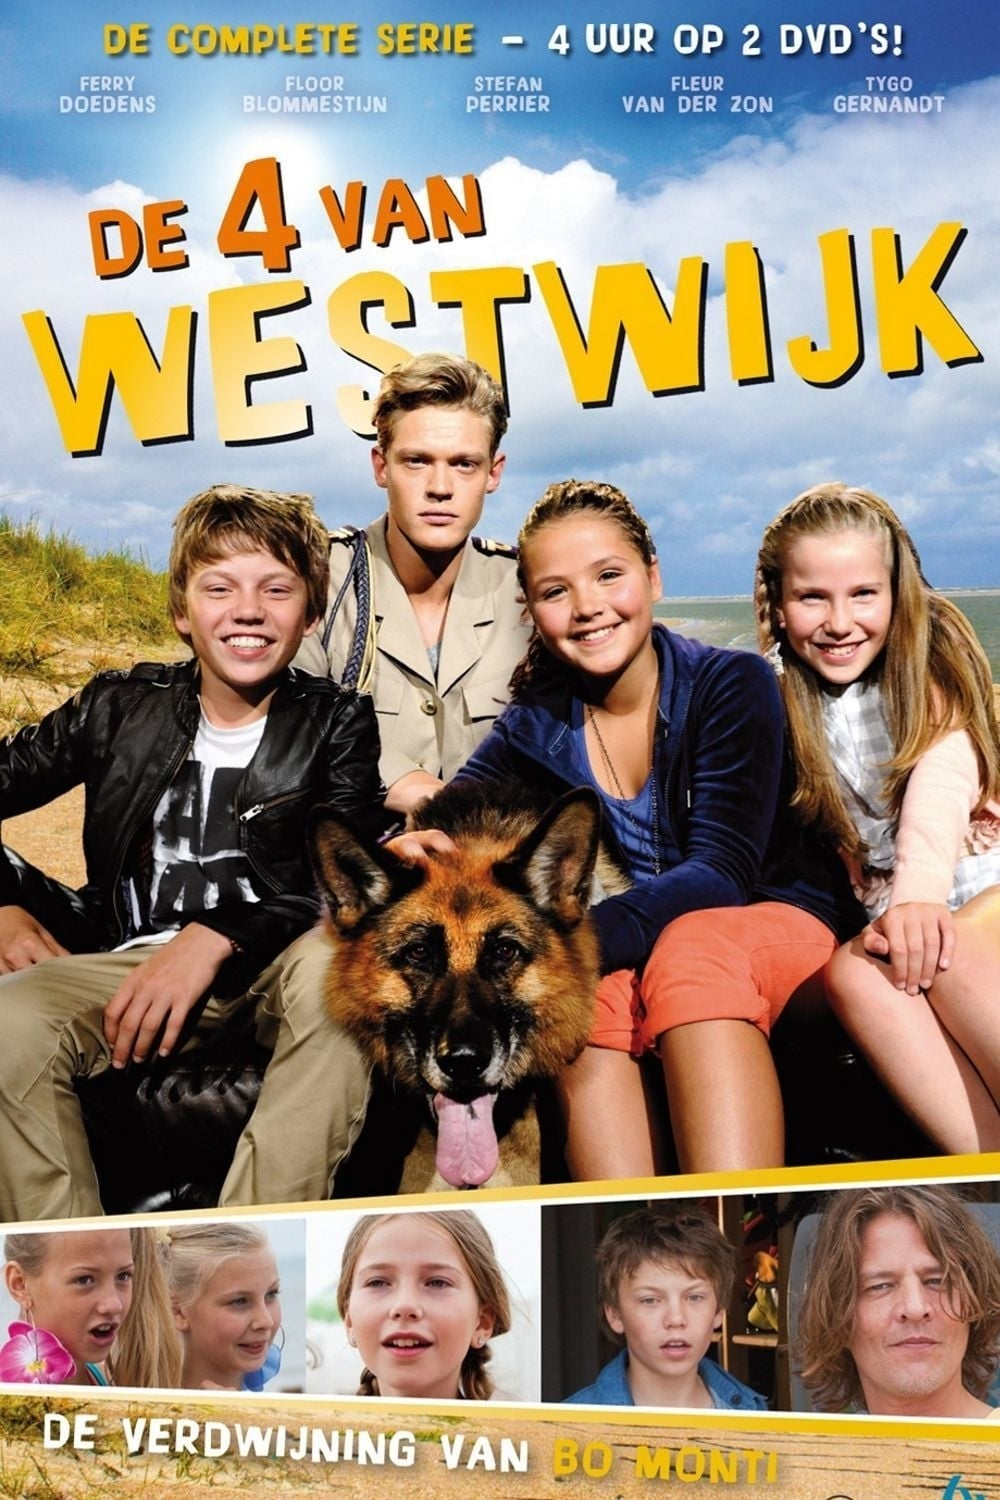 The 4 from Westwijk